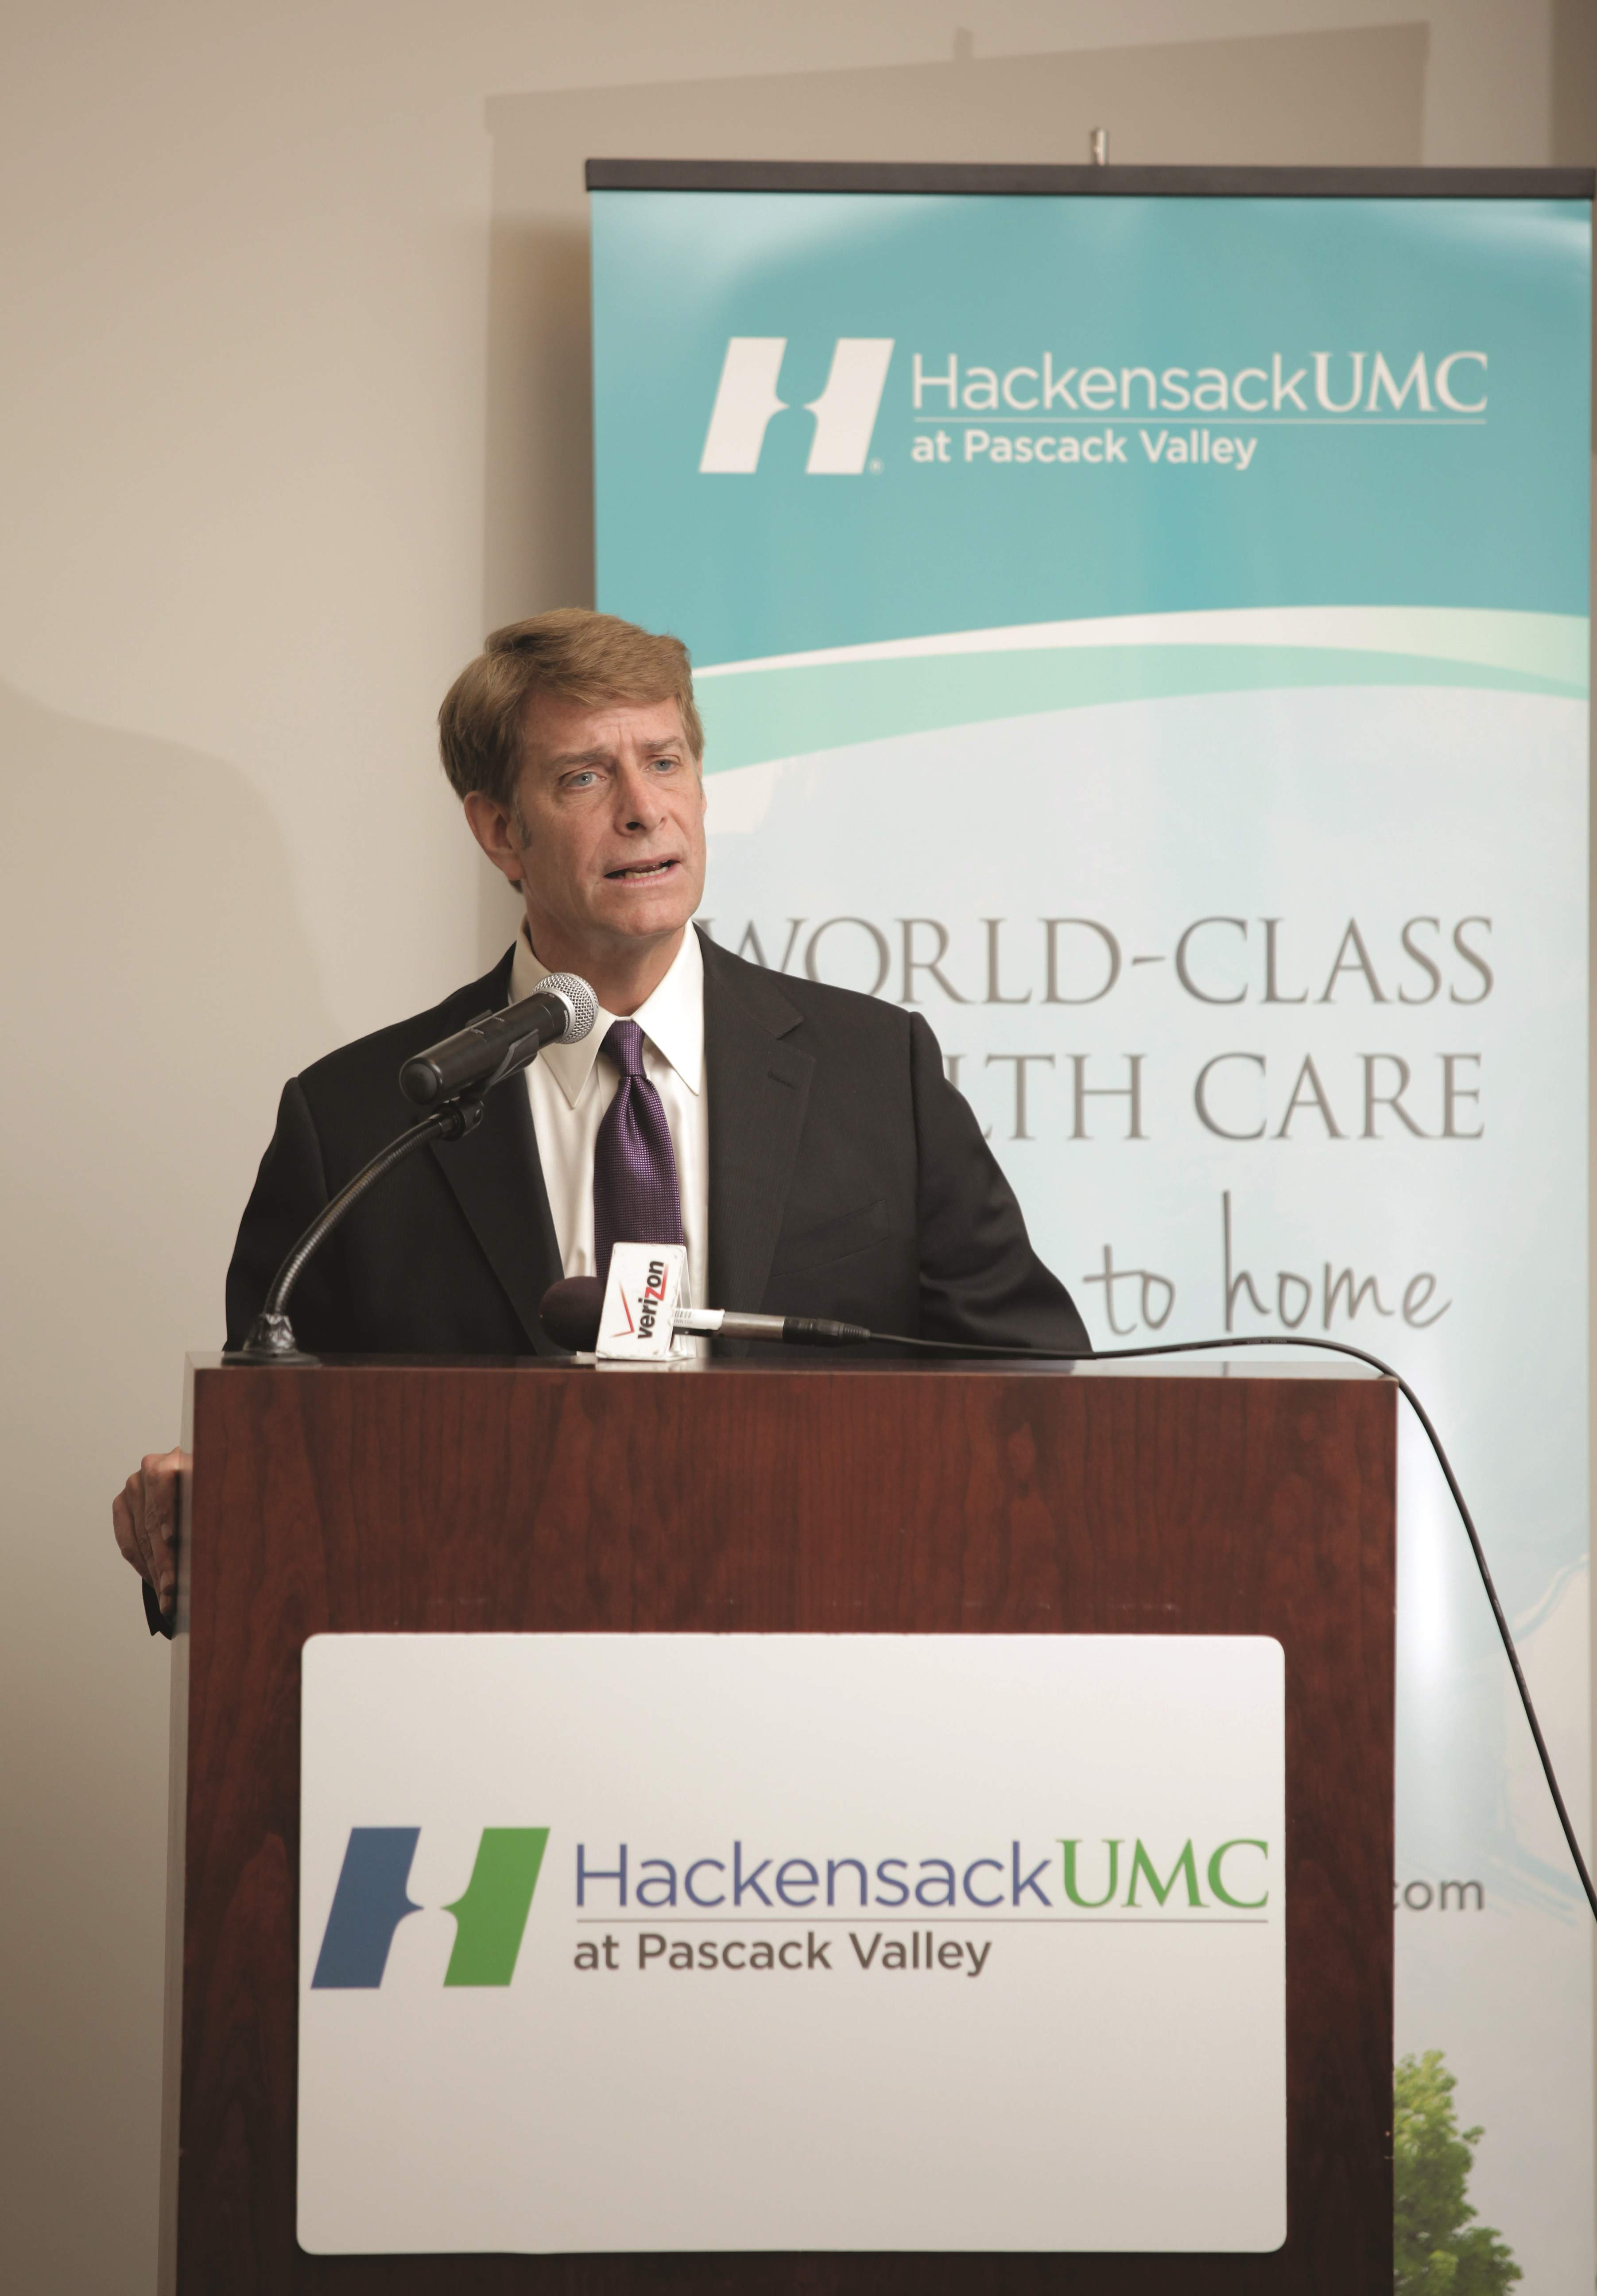 """Garrett soared to the top of our health care list last year with the announcements of a merger with Meridian Health and the deal to create a new medical school with Seton Hall. This year? Well, one admirer said he has bigger plans. """"I think he's on a trajectory to take over the world,"""" the person joked. Where would he find the time? """"The medical school is a big deal,"""" said one observer. """"(He's) got to digest the merger,"""" said another. And yet, more action may be coming. """"Both (Hackensack and Meridian) have a fairly clear pipeline of acquisitions, some announced, some unannounced. So they're basically glomming onto their enterprises and then merging them together,"""" one insider offered. Another said more partnerships with organizations not necessarily known for health care are coming. That wouldn't surprise another source: """"I think the thing about Garrett is he gets the idea that health care is an enormously growing business, but you need market leverage in order to be able to do it. So he gets scale."""""""